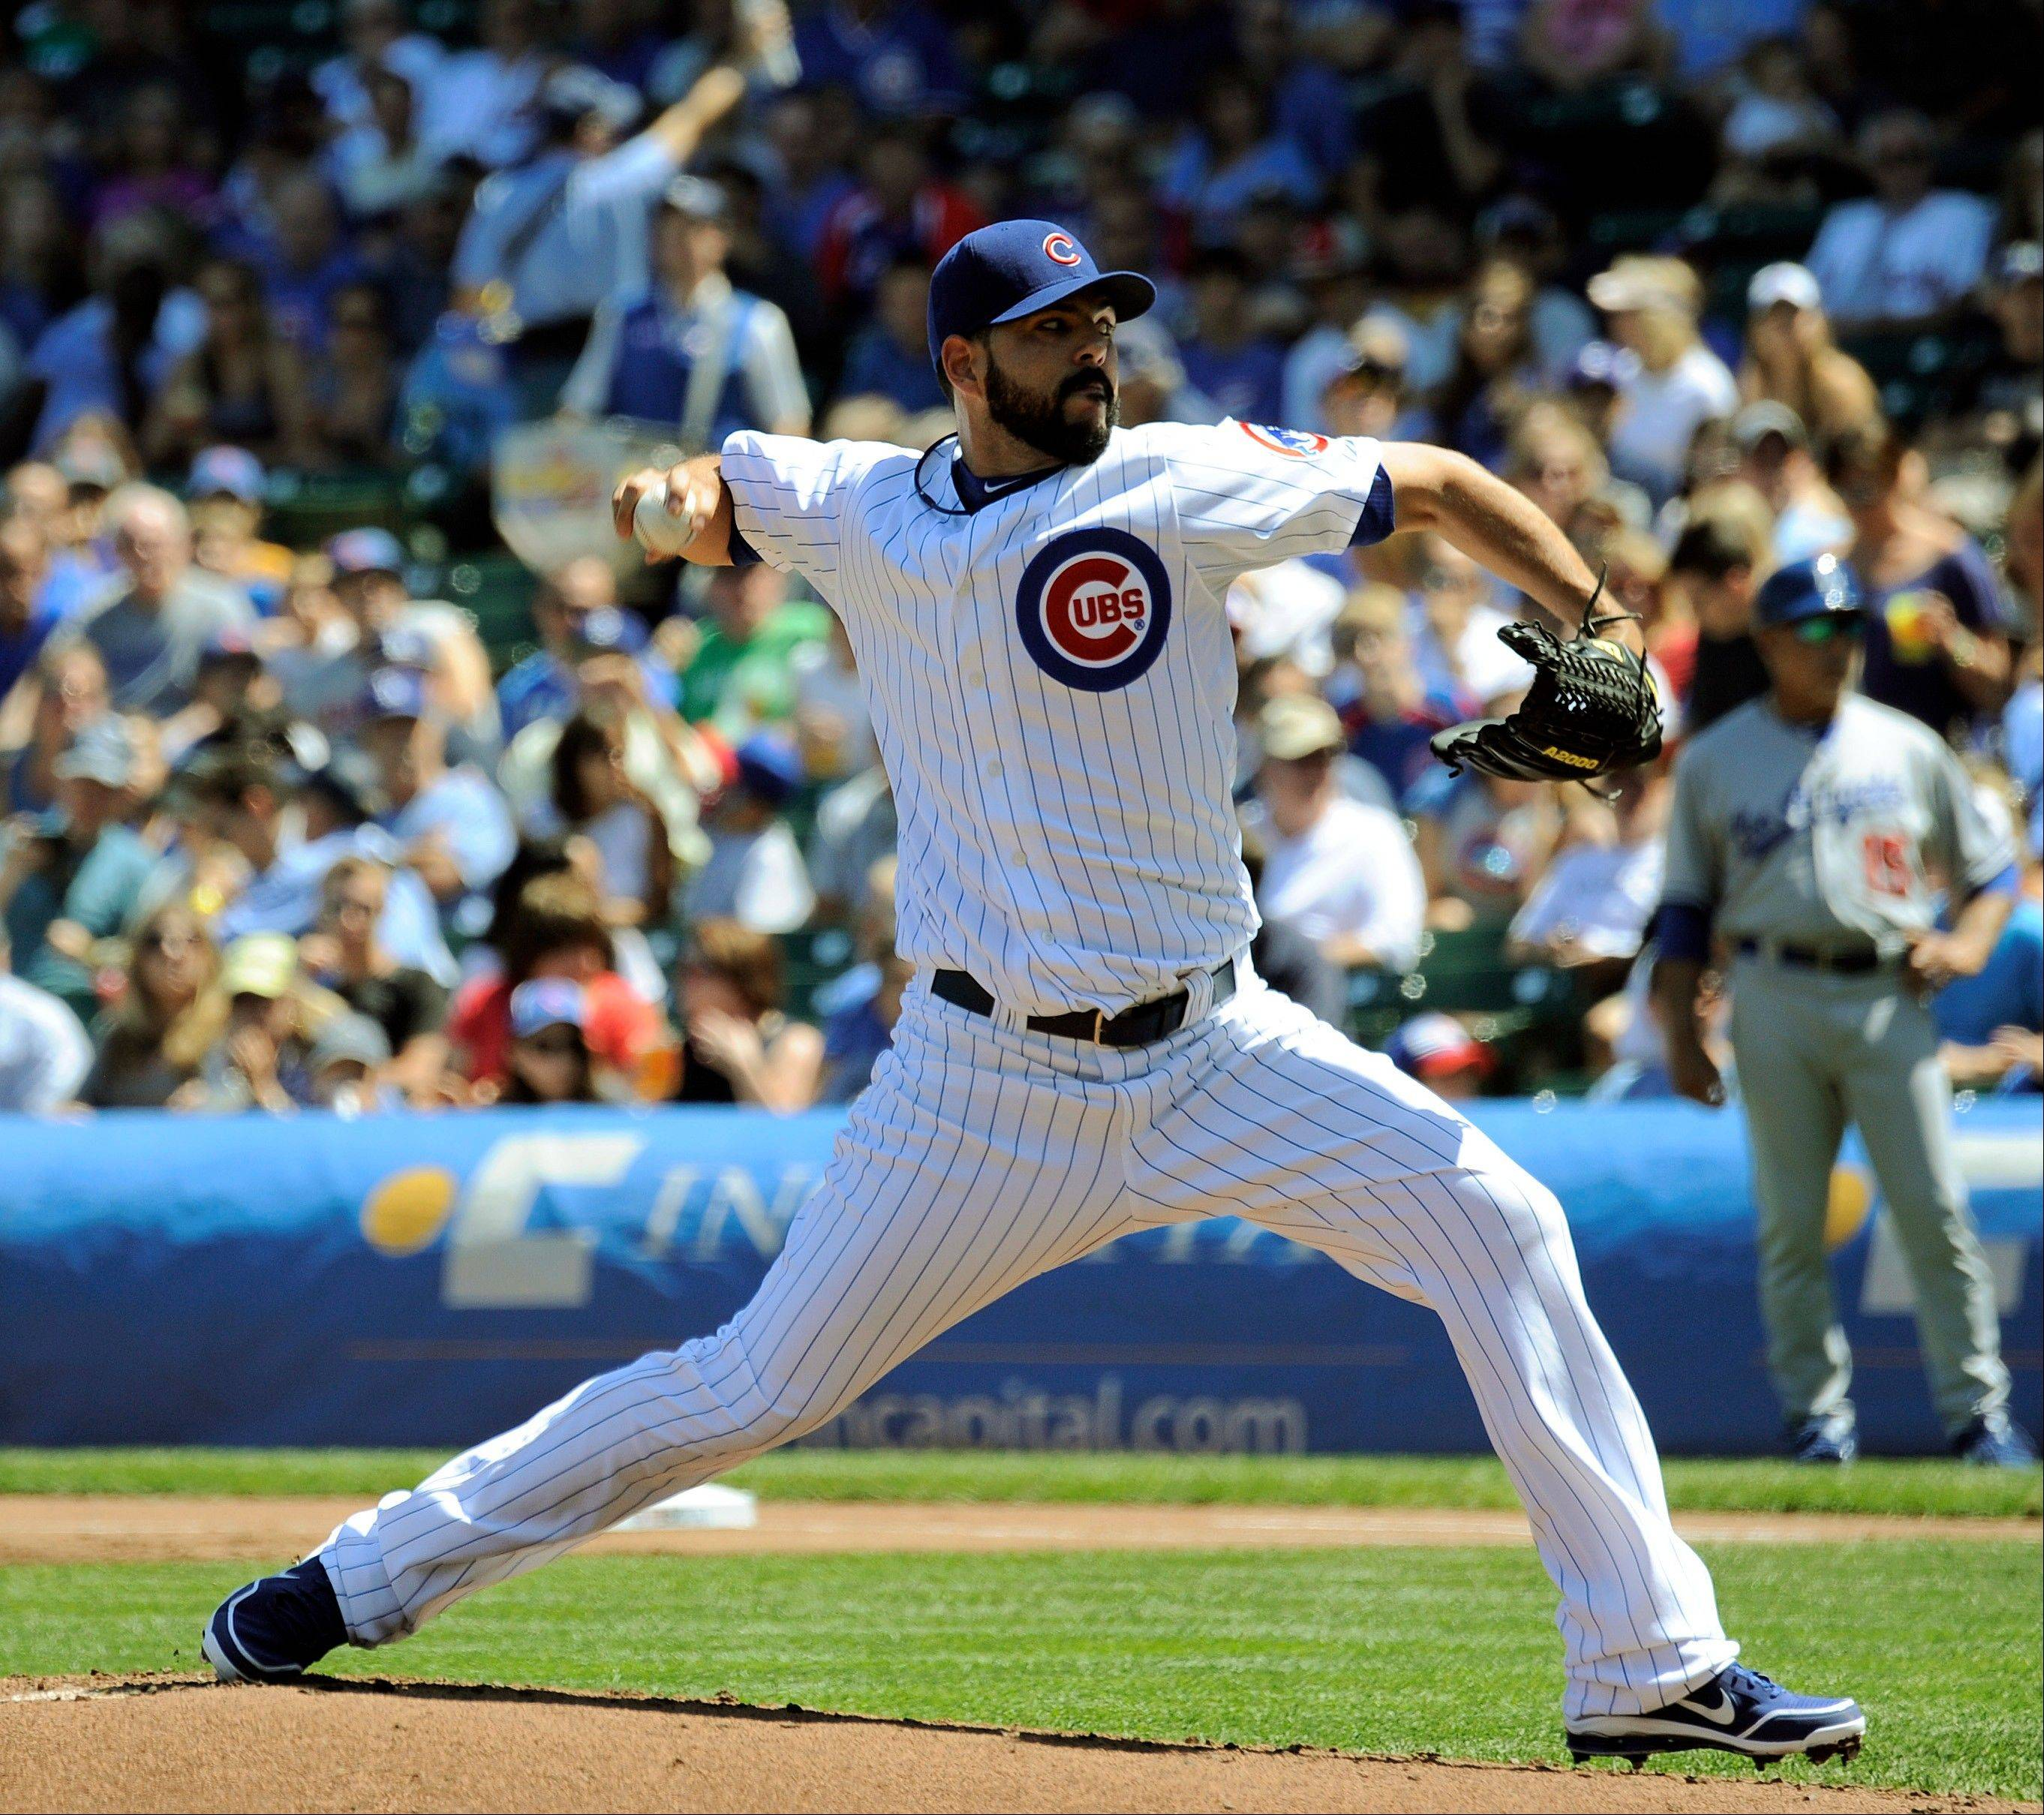 Cubs pitcher Carlos Villanueva throws in the first inning Sunday at Wrigley Field.